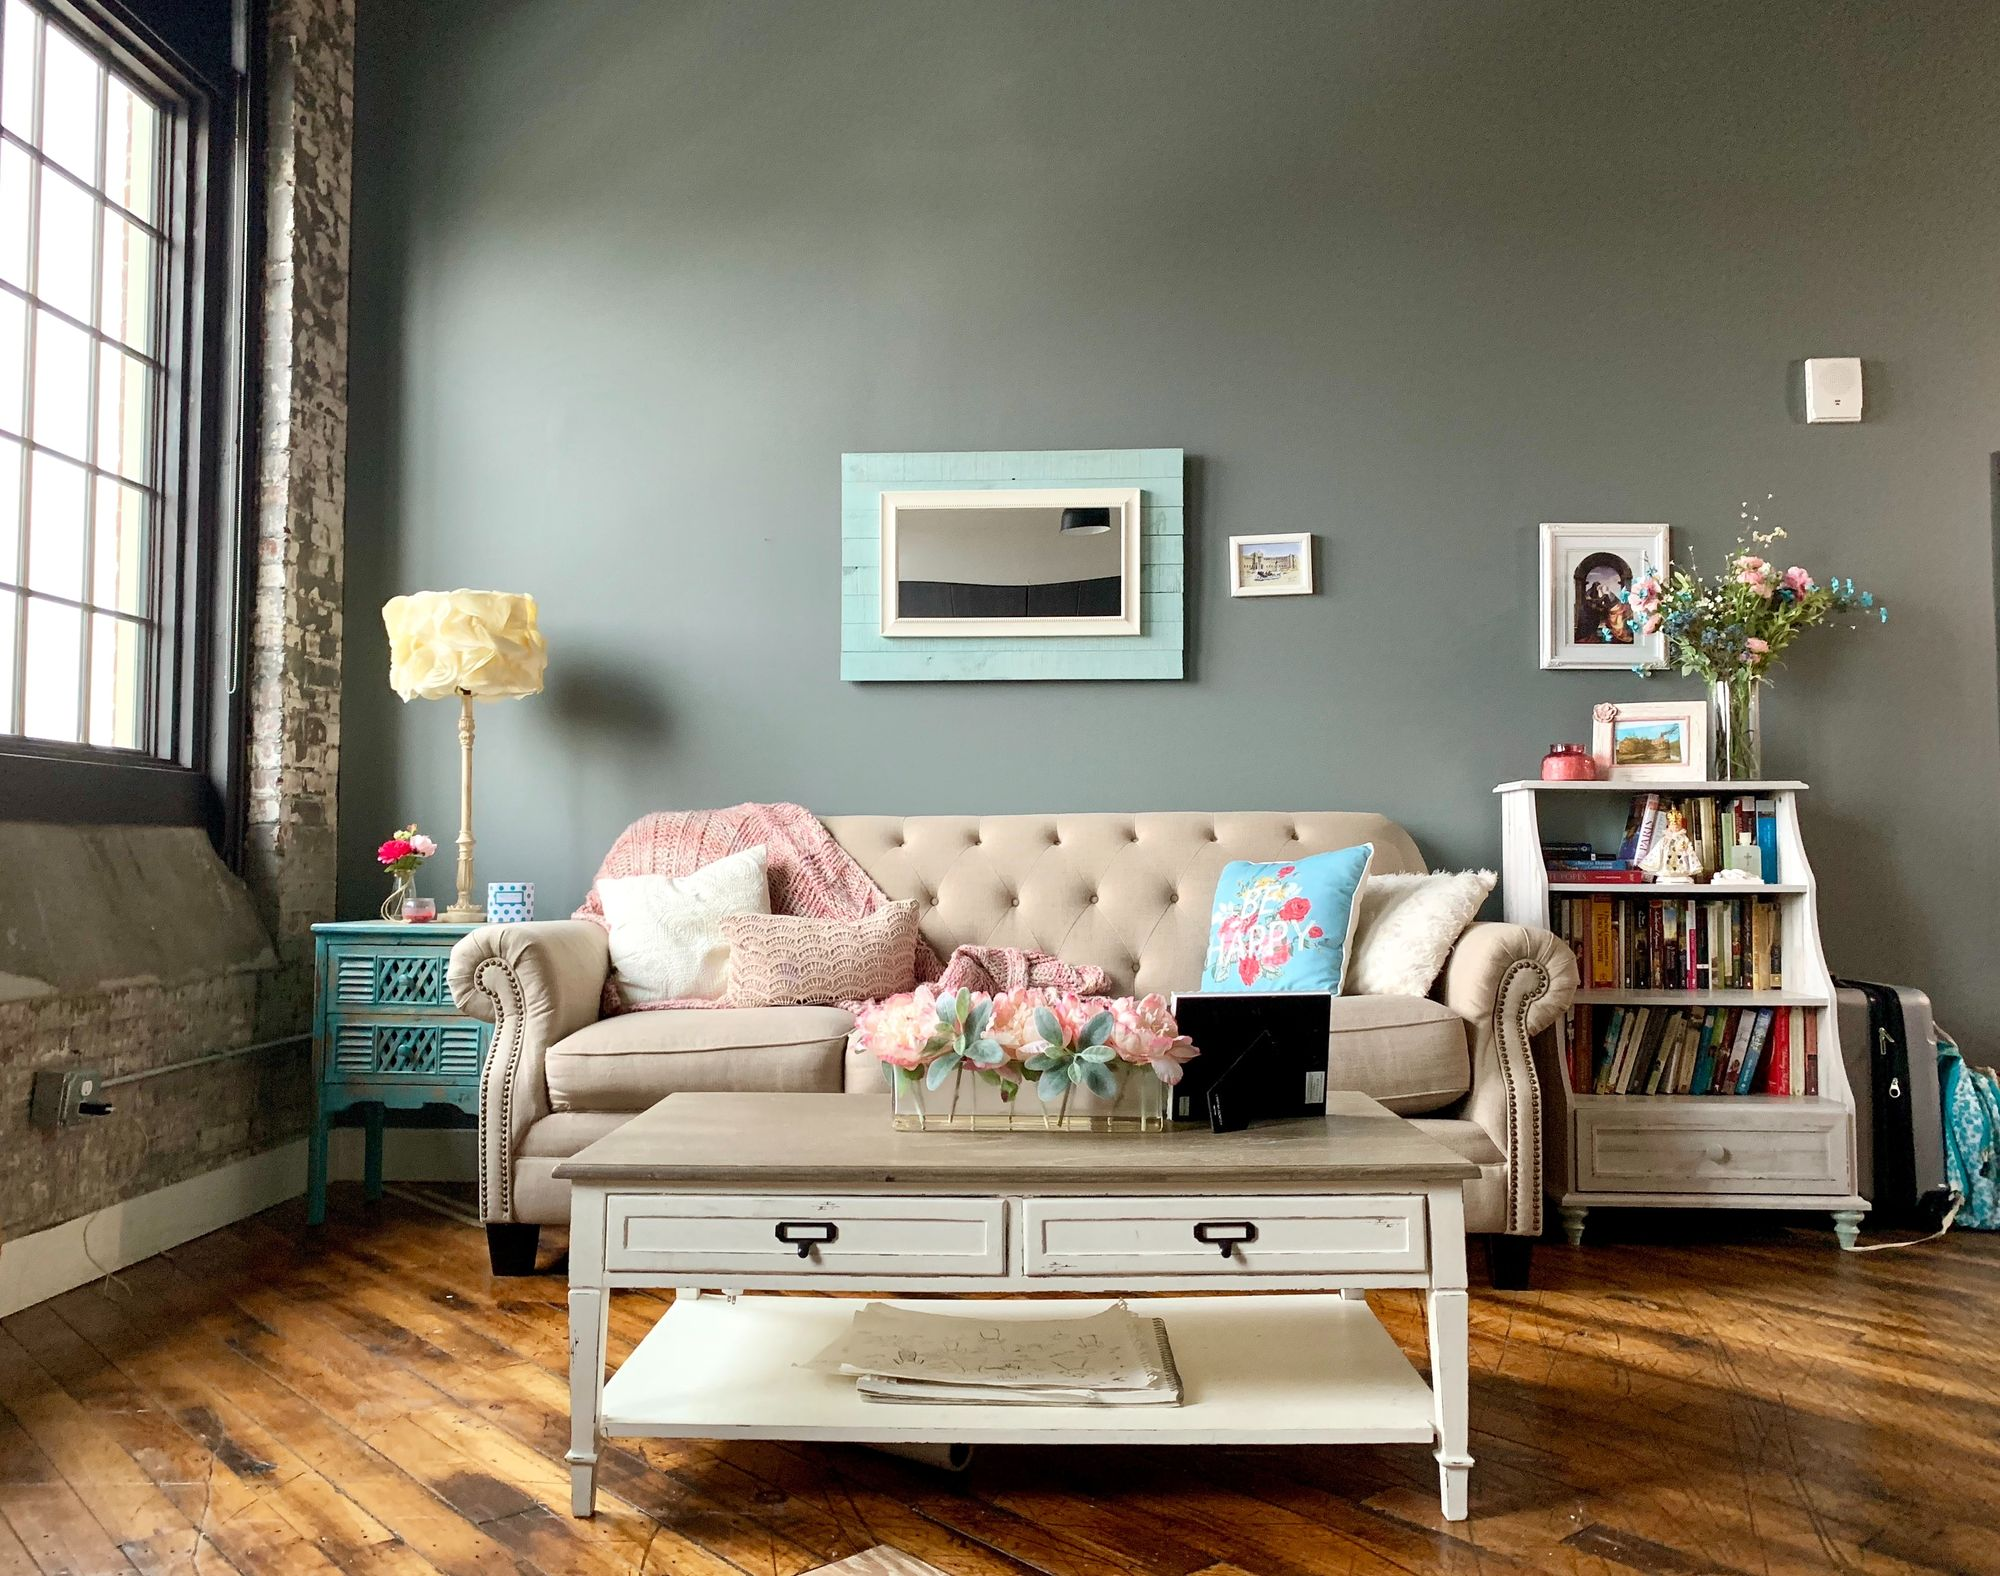 sustainable furniture, secondhand shopping, budget-friendly, interior design